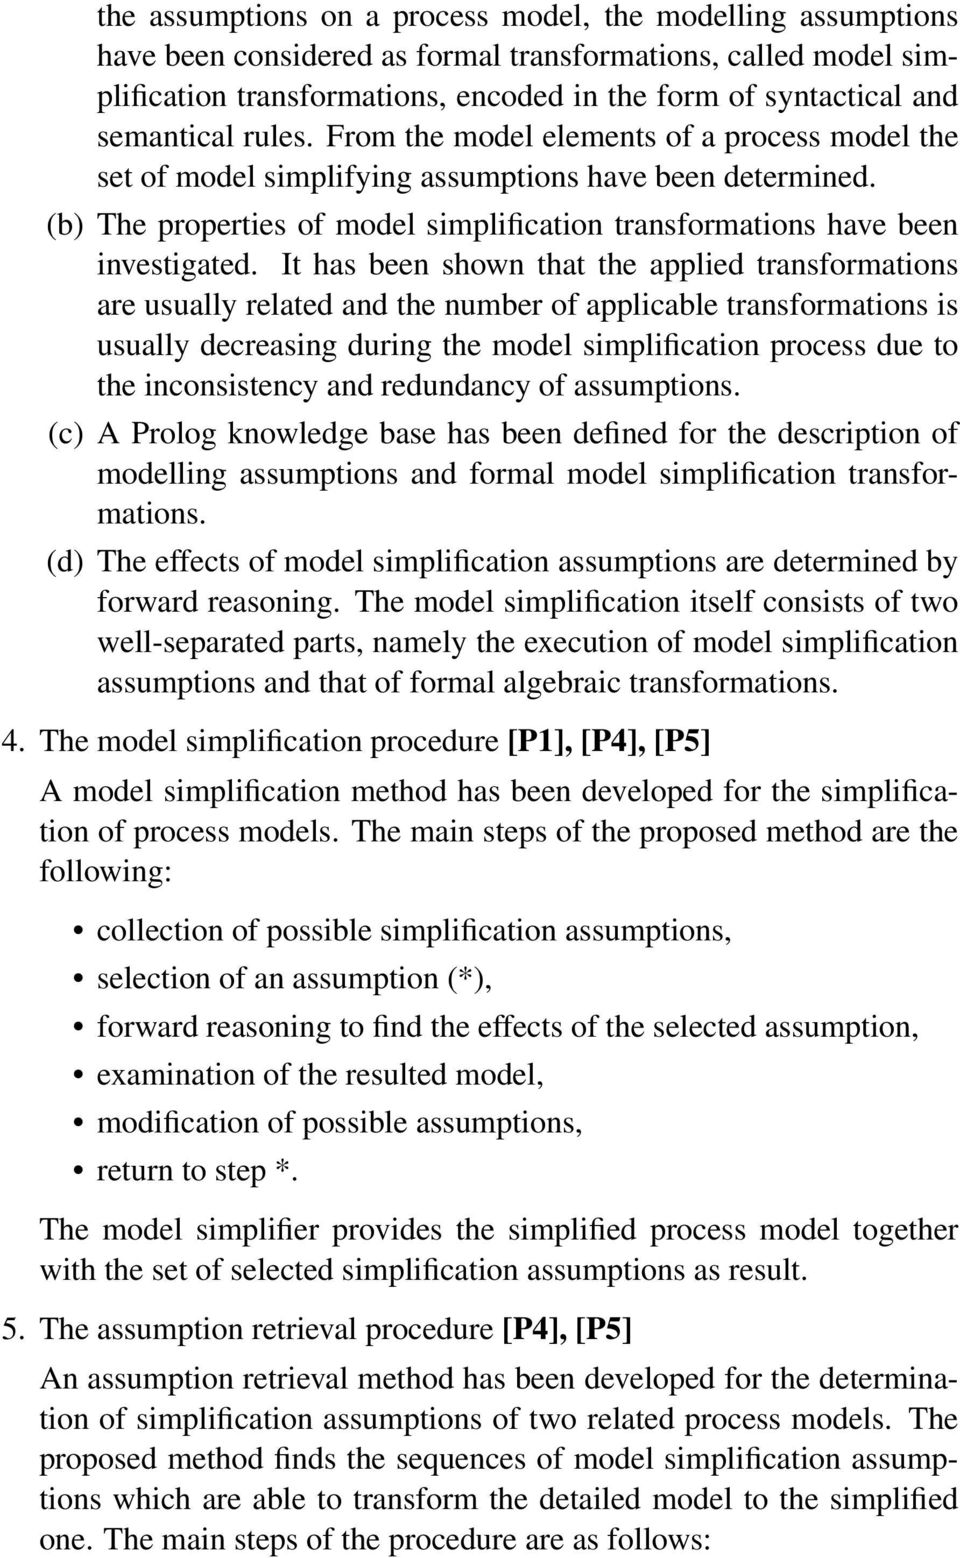 (b) The properties of model simplification transformations have been investigated.